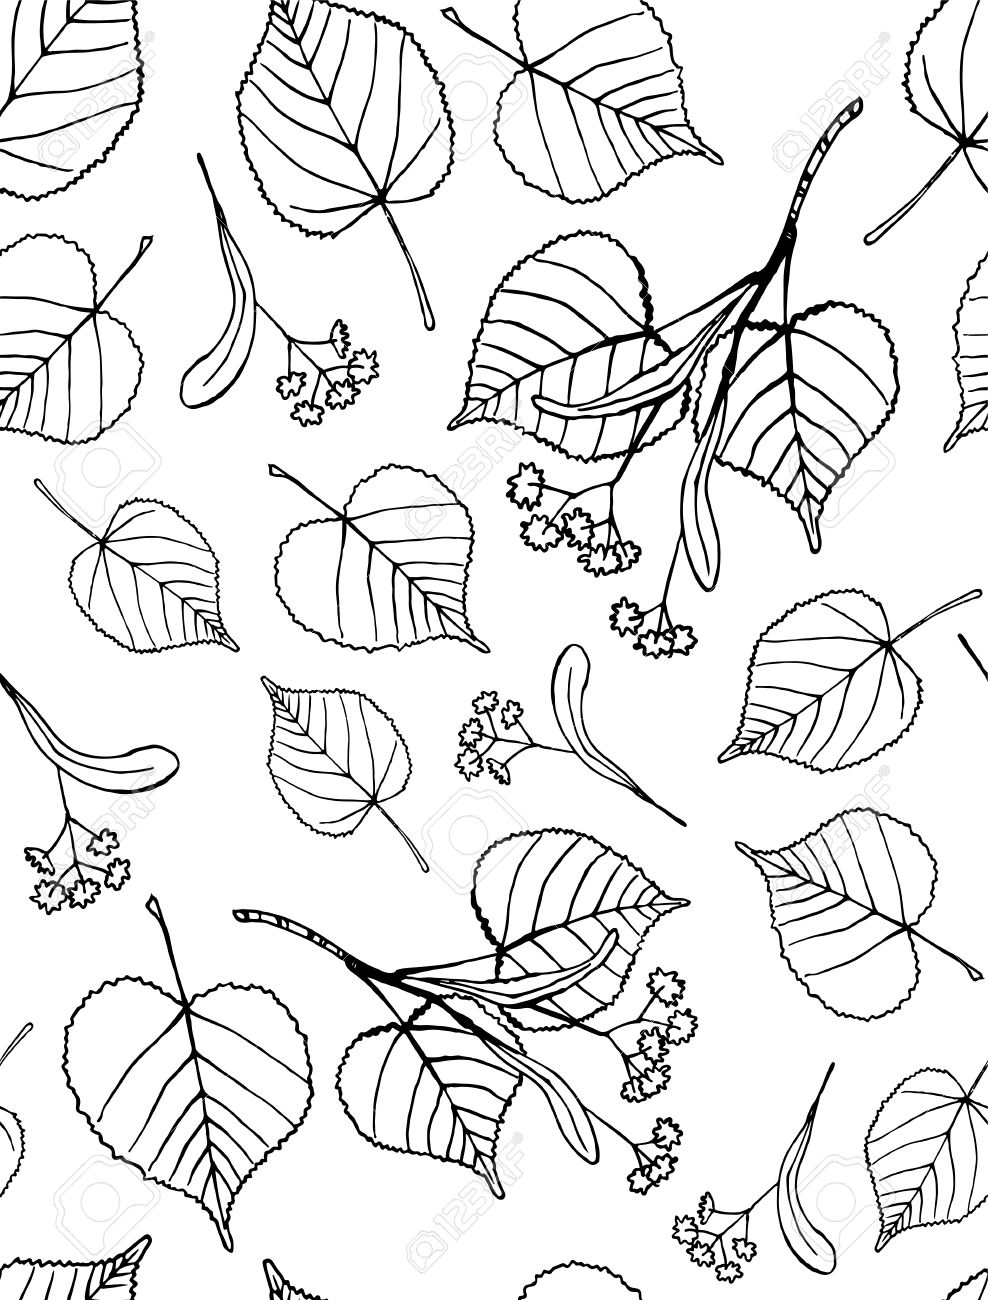 Tilia clipart #1, Download drawings